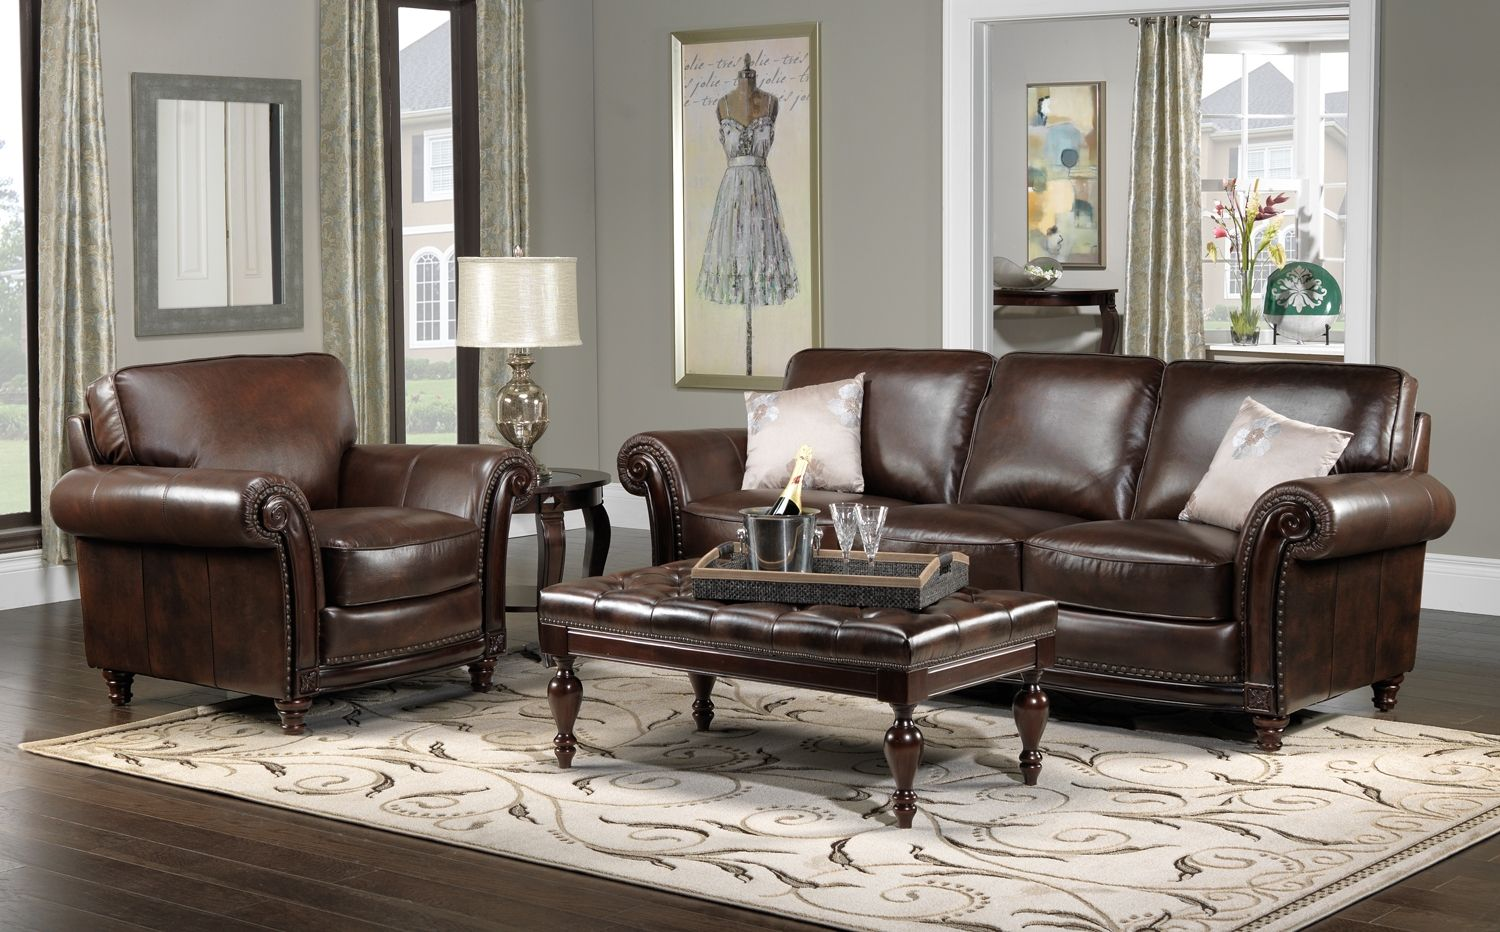 Dream house decor ideas for brown leather furniture gngkxz for Living room ideas with leather furniture